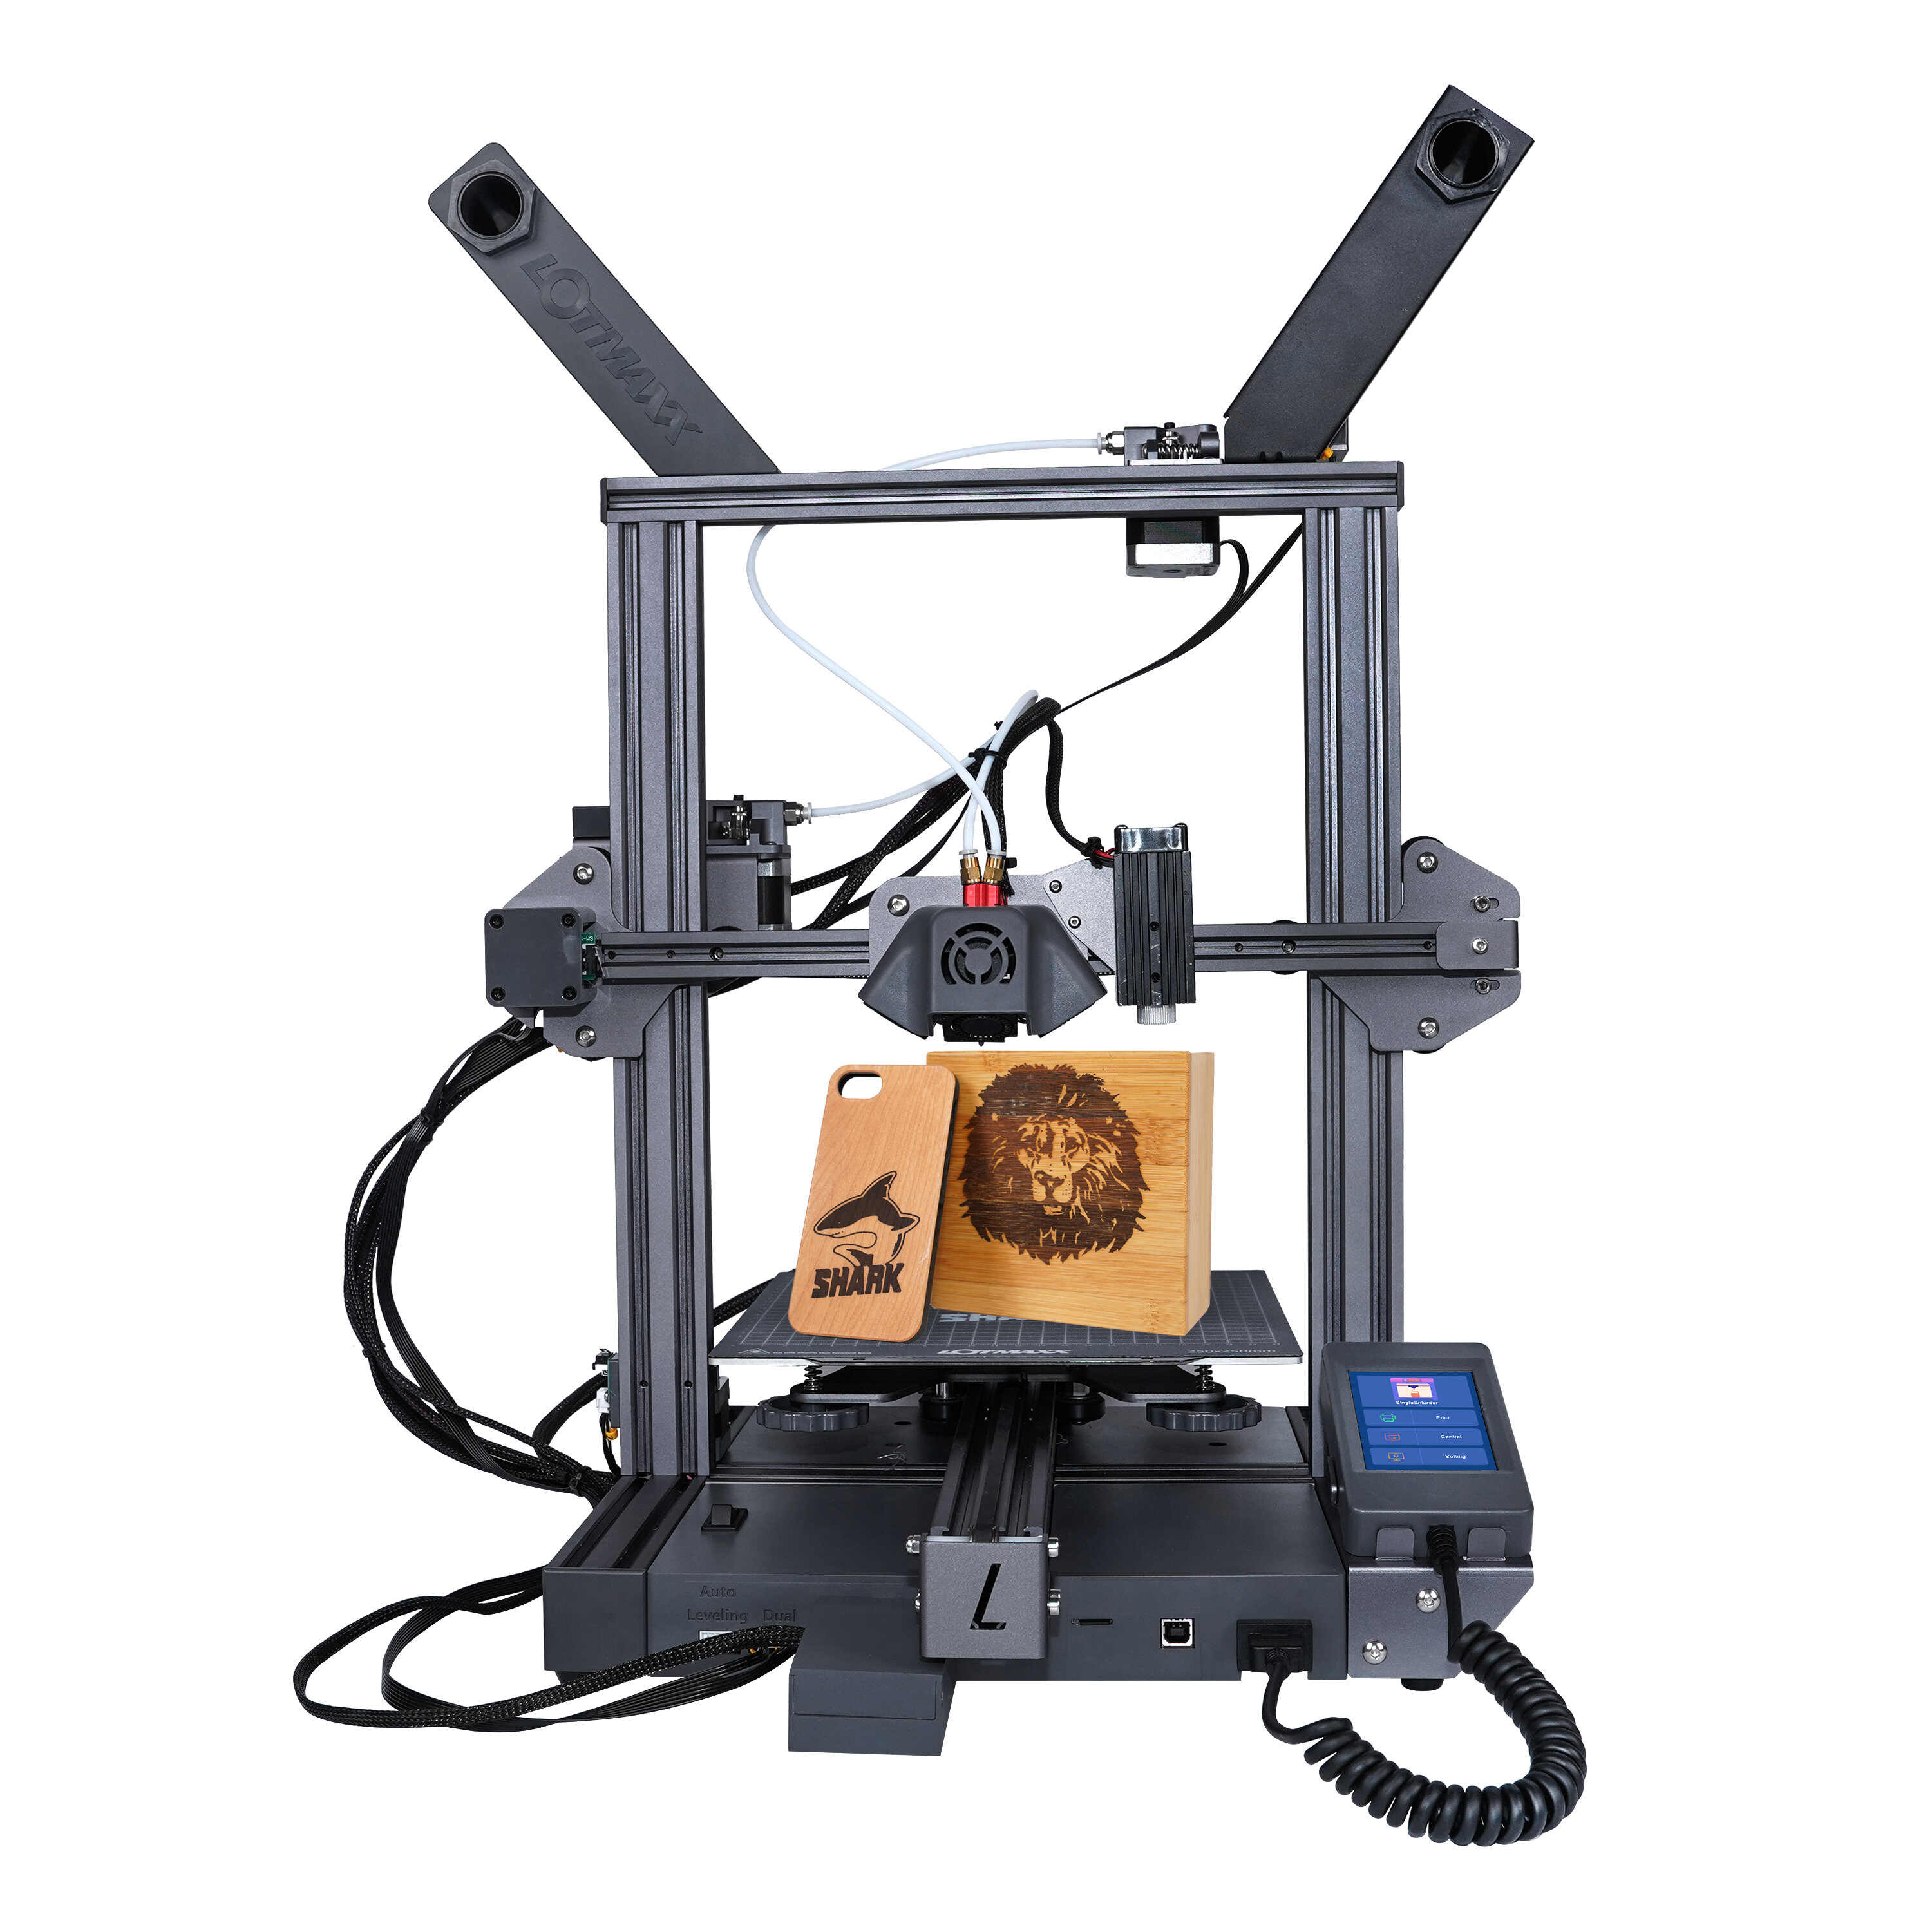 LOTMAXX SC-10 SHARK 3D Printer 235*235*265mm Print Size Support Auto Leveling/Dual Color Print/Laser Engraving With 8 Languages Translate - EU Plug